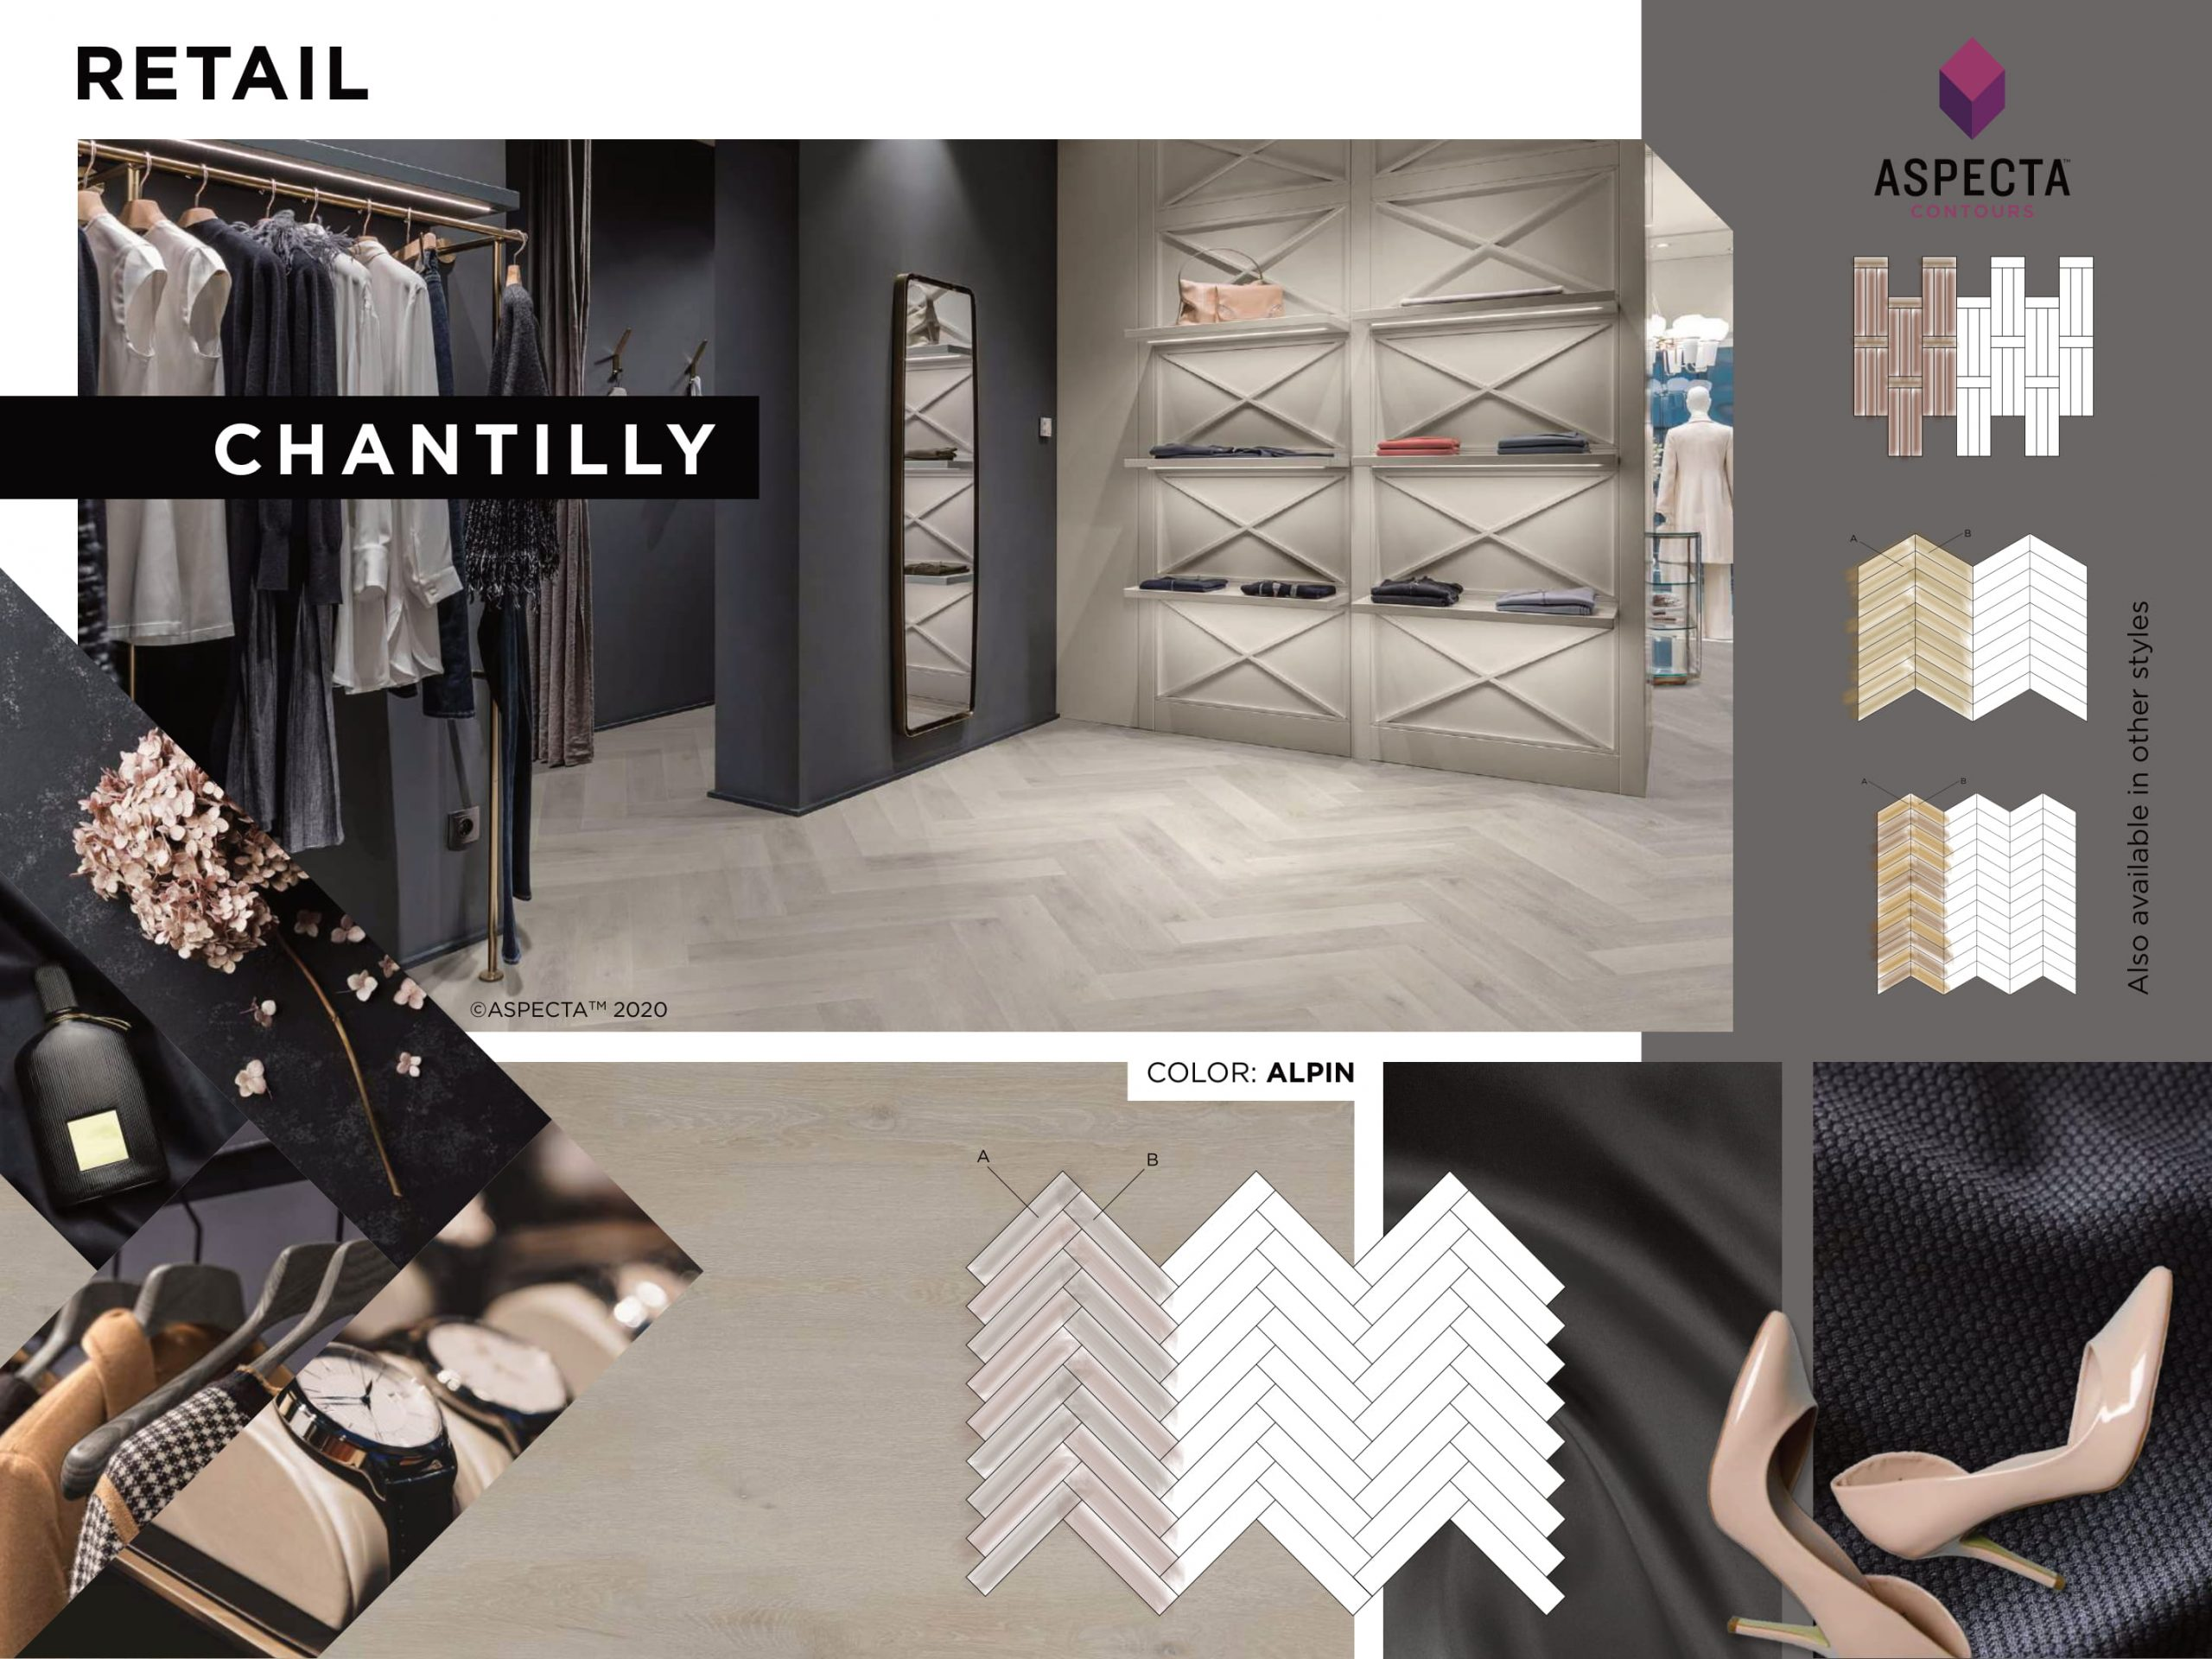 08_ASP_Contours_Moodboard_Chantilly_Retail_05_2020-1